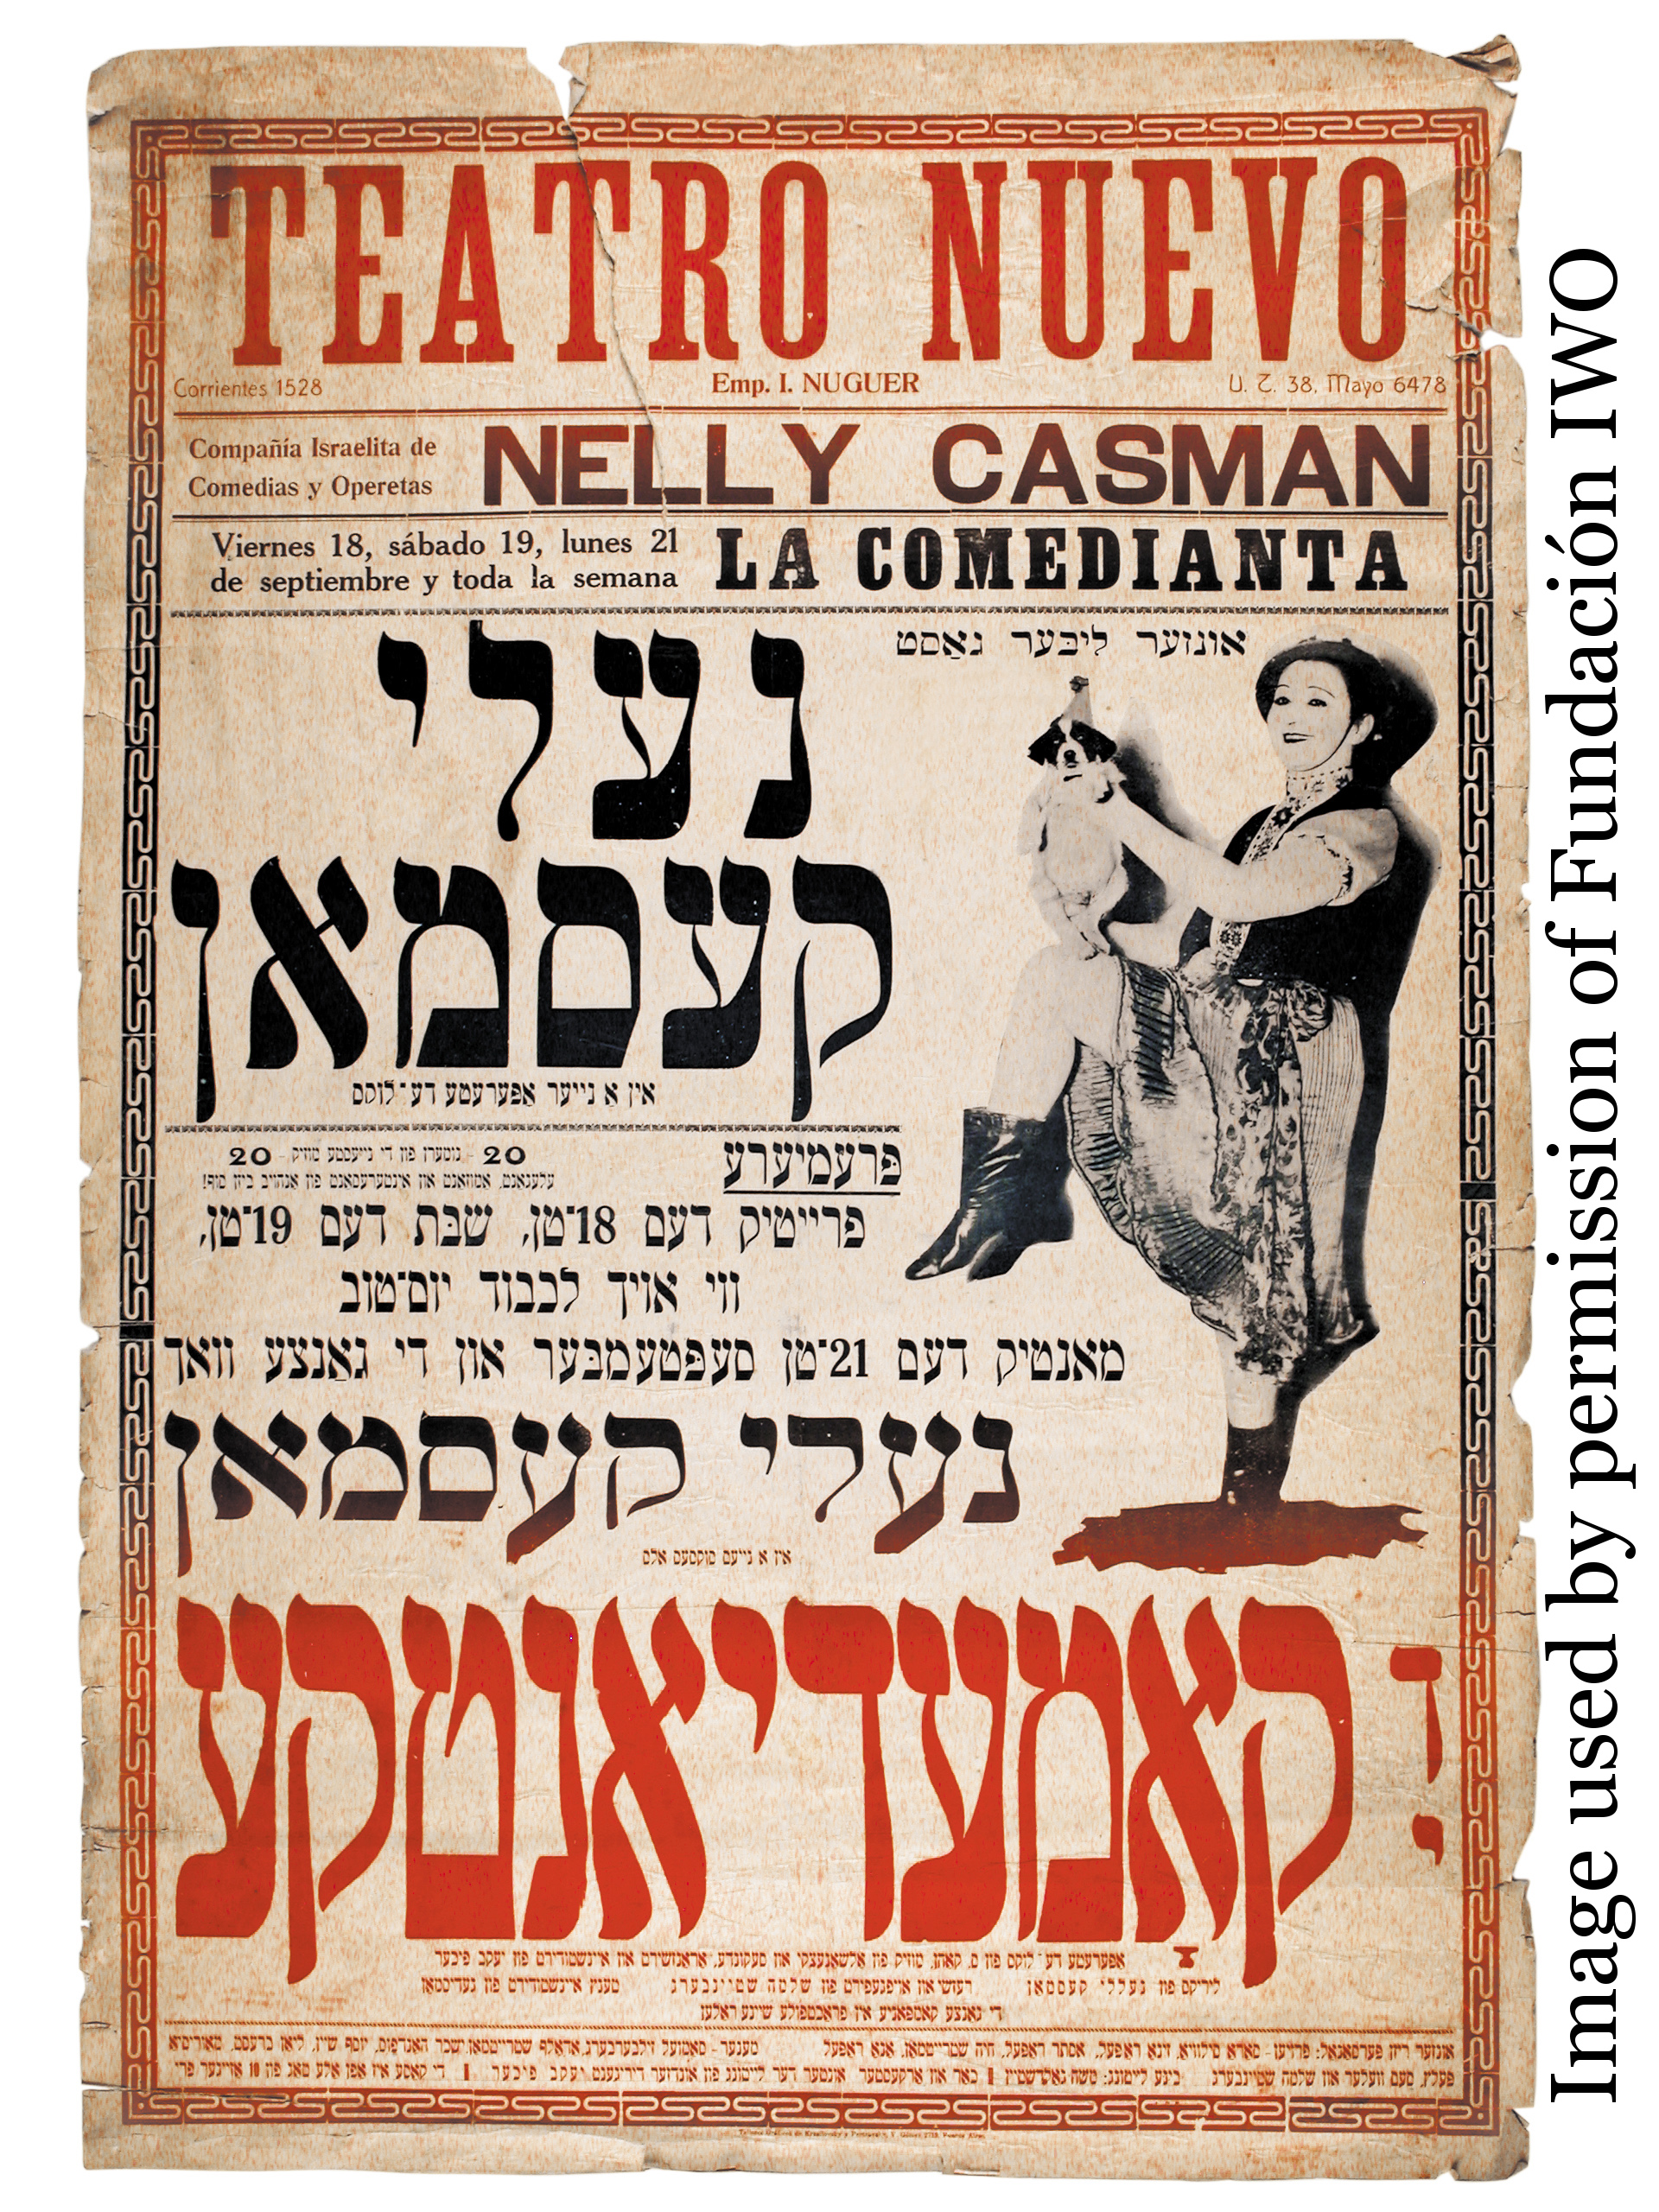 Yiddish Theater image